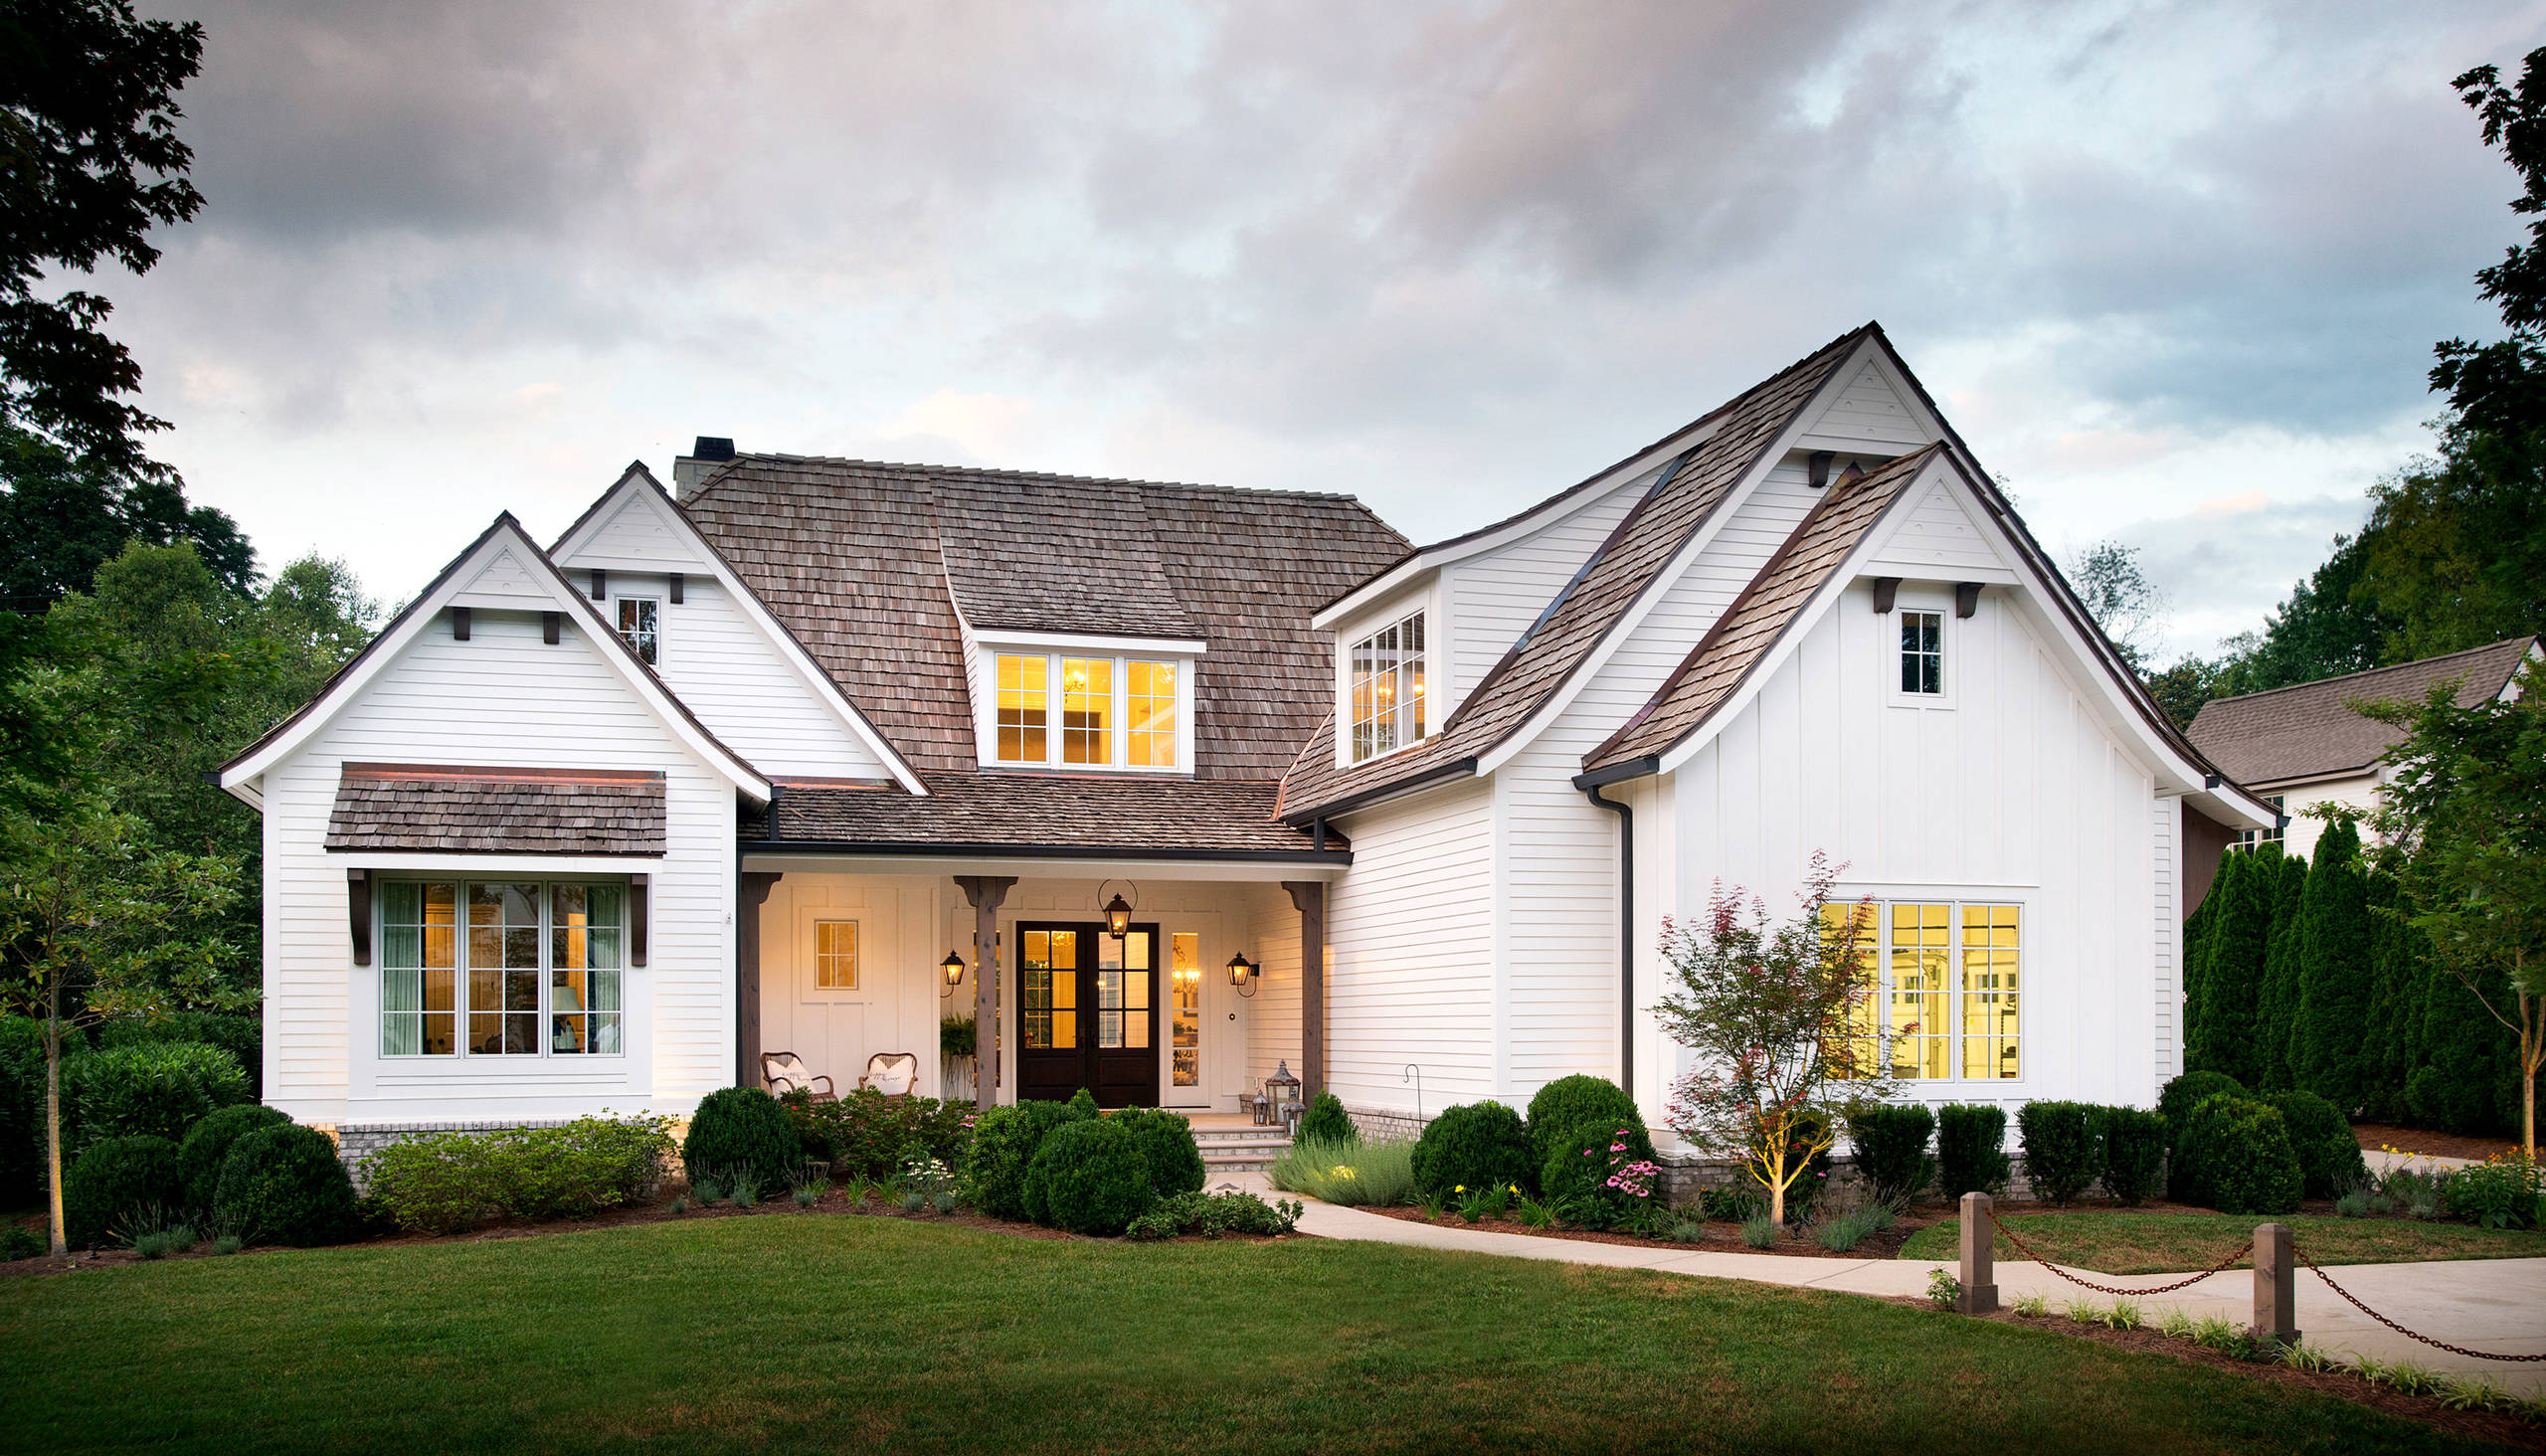 Highlands of Belle Meade Arts and Crafts / Farmhouse Inspired Residence